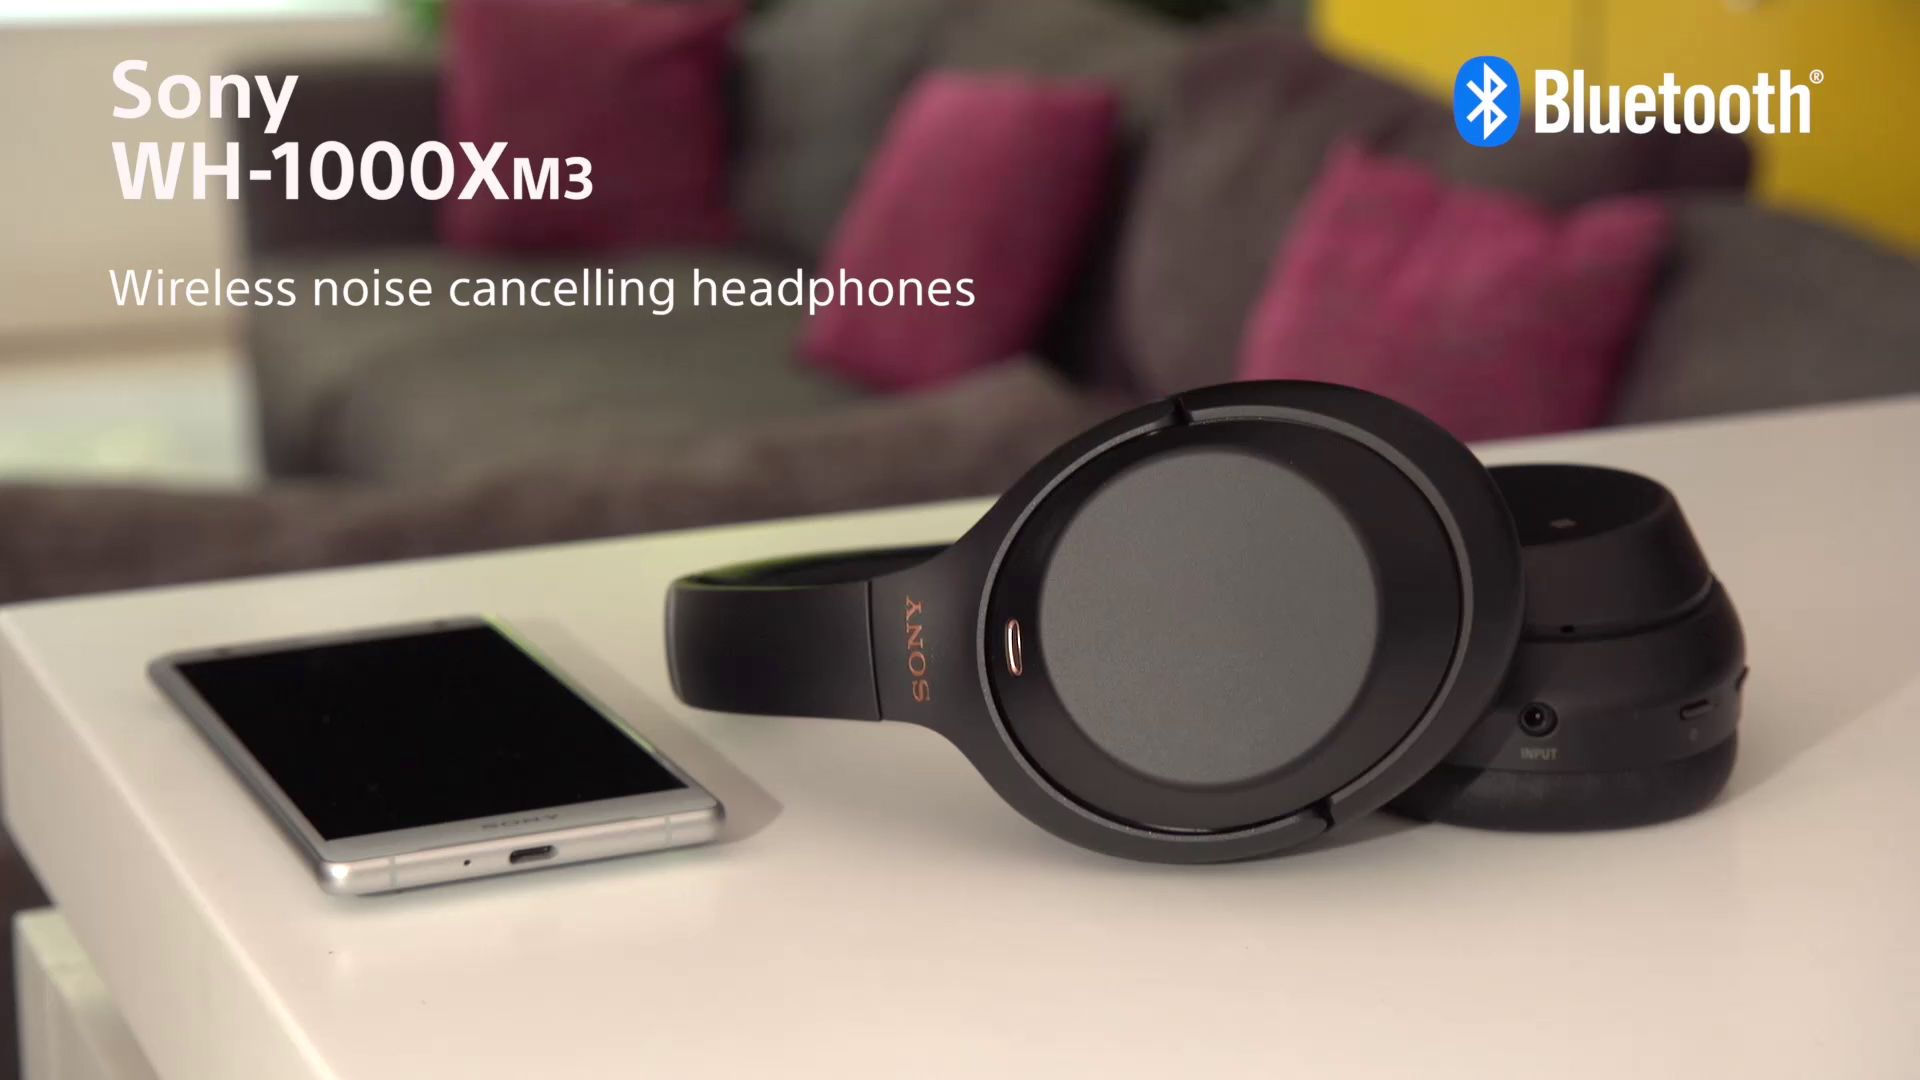 Sony WH-1000XM3 Noise Cancelling Wireless Bluetooth NFC High Resolution  Audio Over-Ear Headphones with Mic/Remote, Black